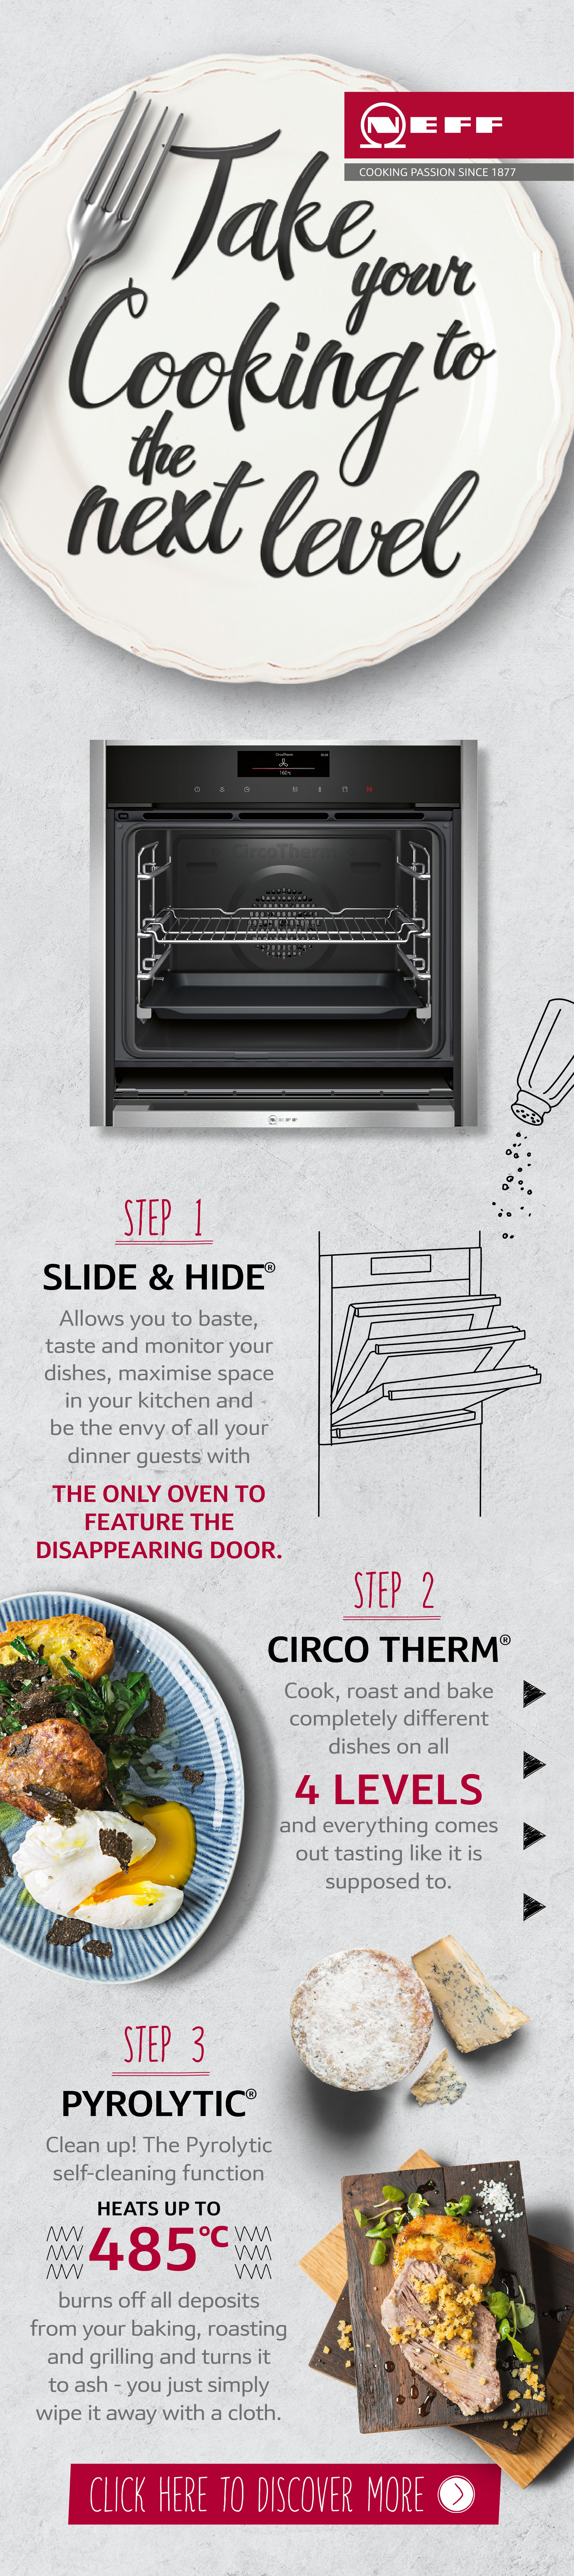 Best 25 self cleaning ovens ideas only on pinterest cleaning best 25 self cleaning ovens ideas only on pinterest cleaning oven window cleaning oven glass and easy oven cleaning eventelaan Gallery